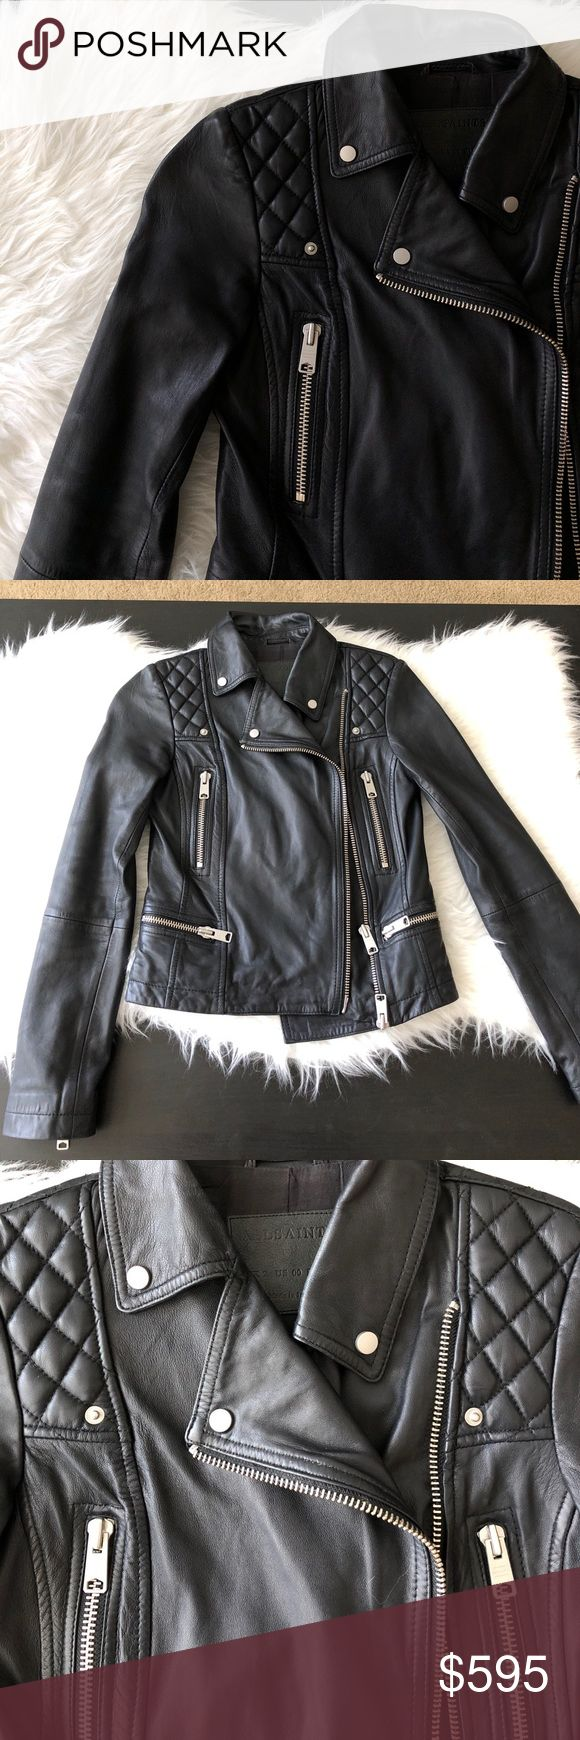 All Saints Bleeker Leather Biker Jacket 100% Sheep Leather Body. Excellent like-new condition. Only worn once. All offers will be considered. All Saints Jackets & Coats